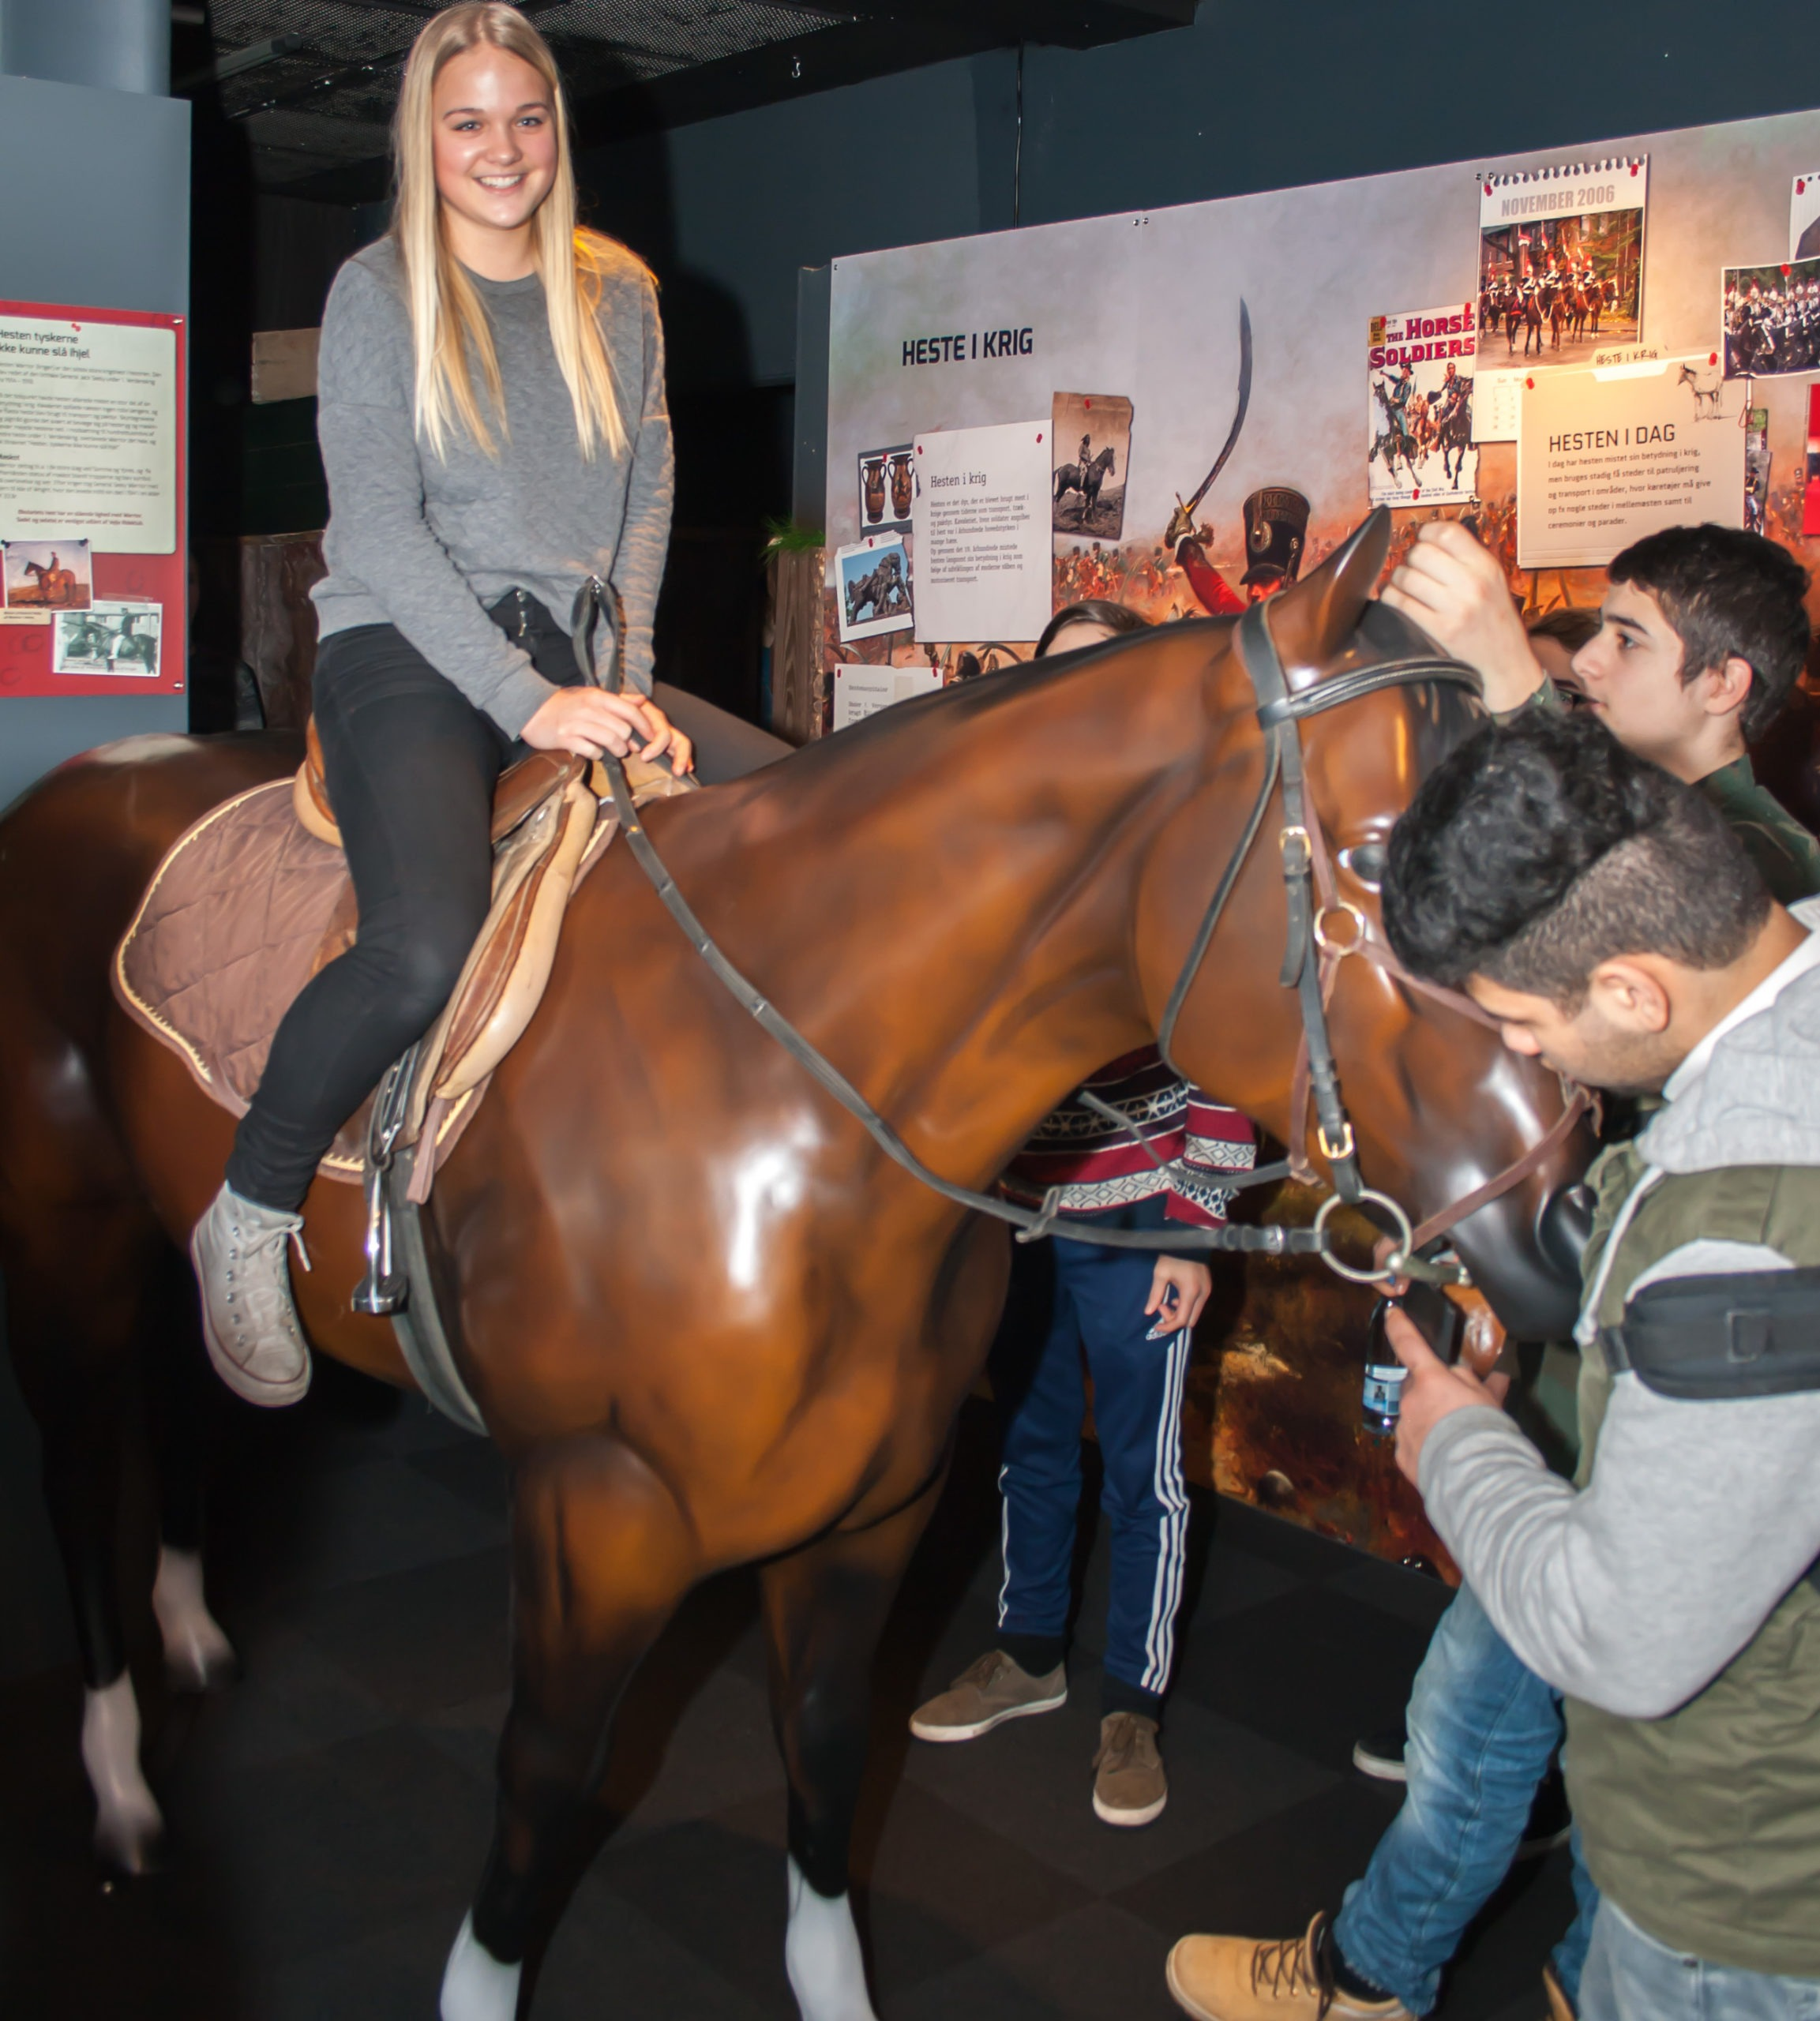 Bay Horse Model at Danish War Exhibition